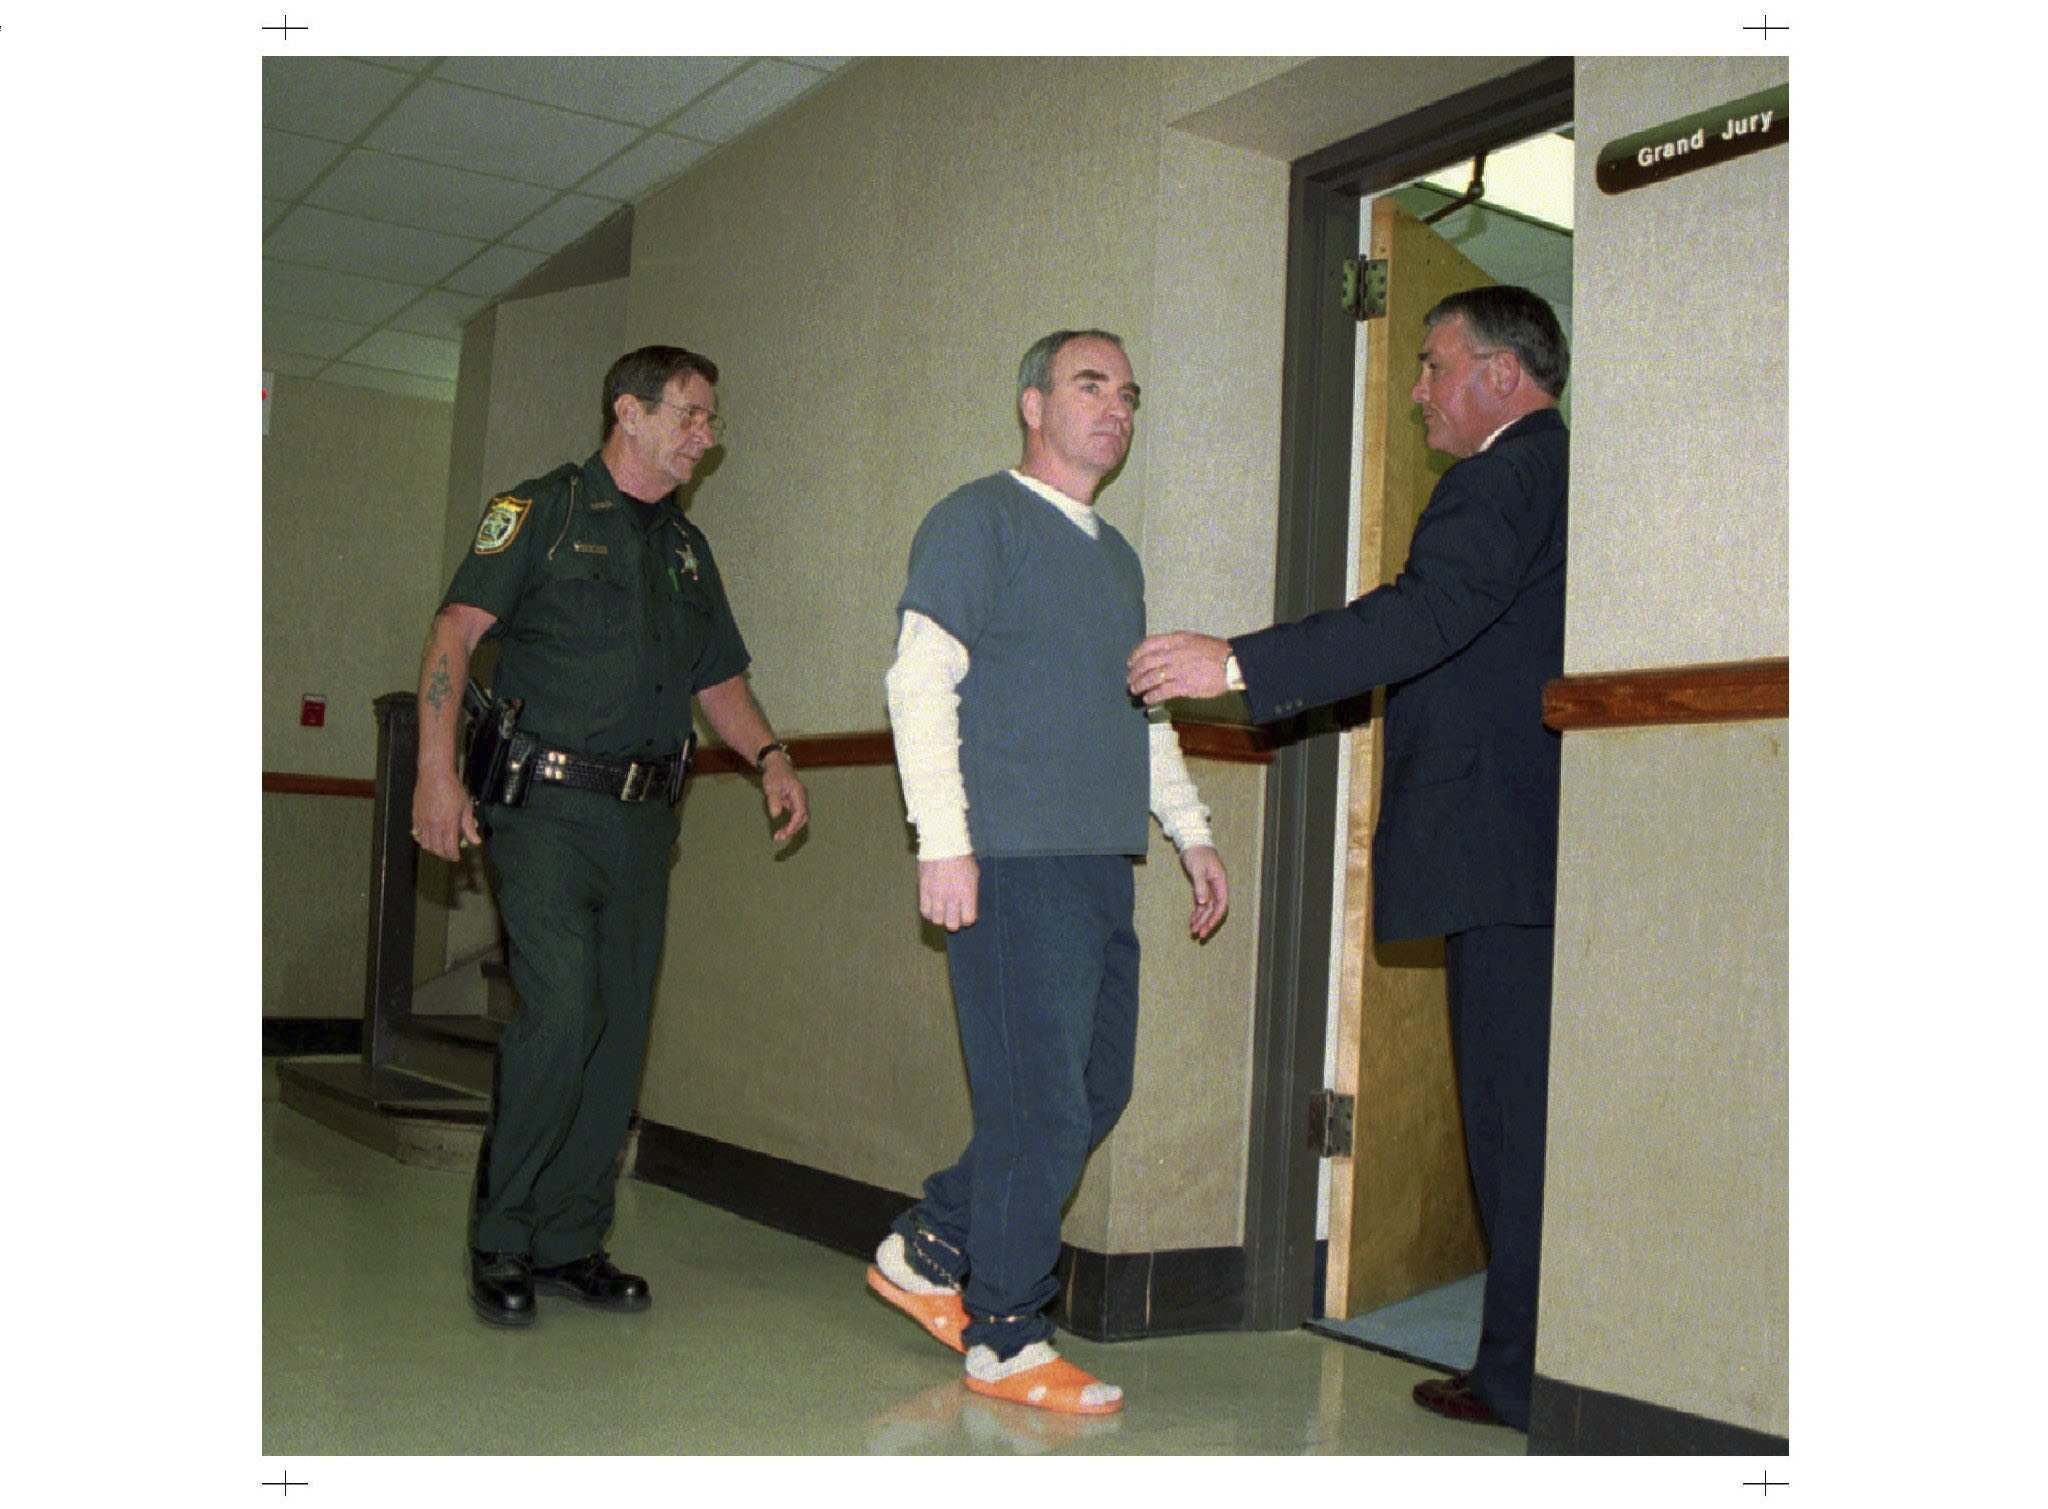 Ralph Crompton was convicted of the David Turenne's murder. (Tracy Wilcox / Panama City News Herald files)